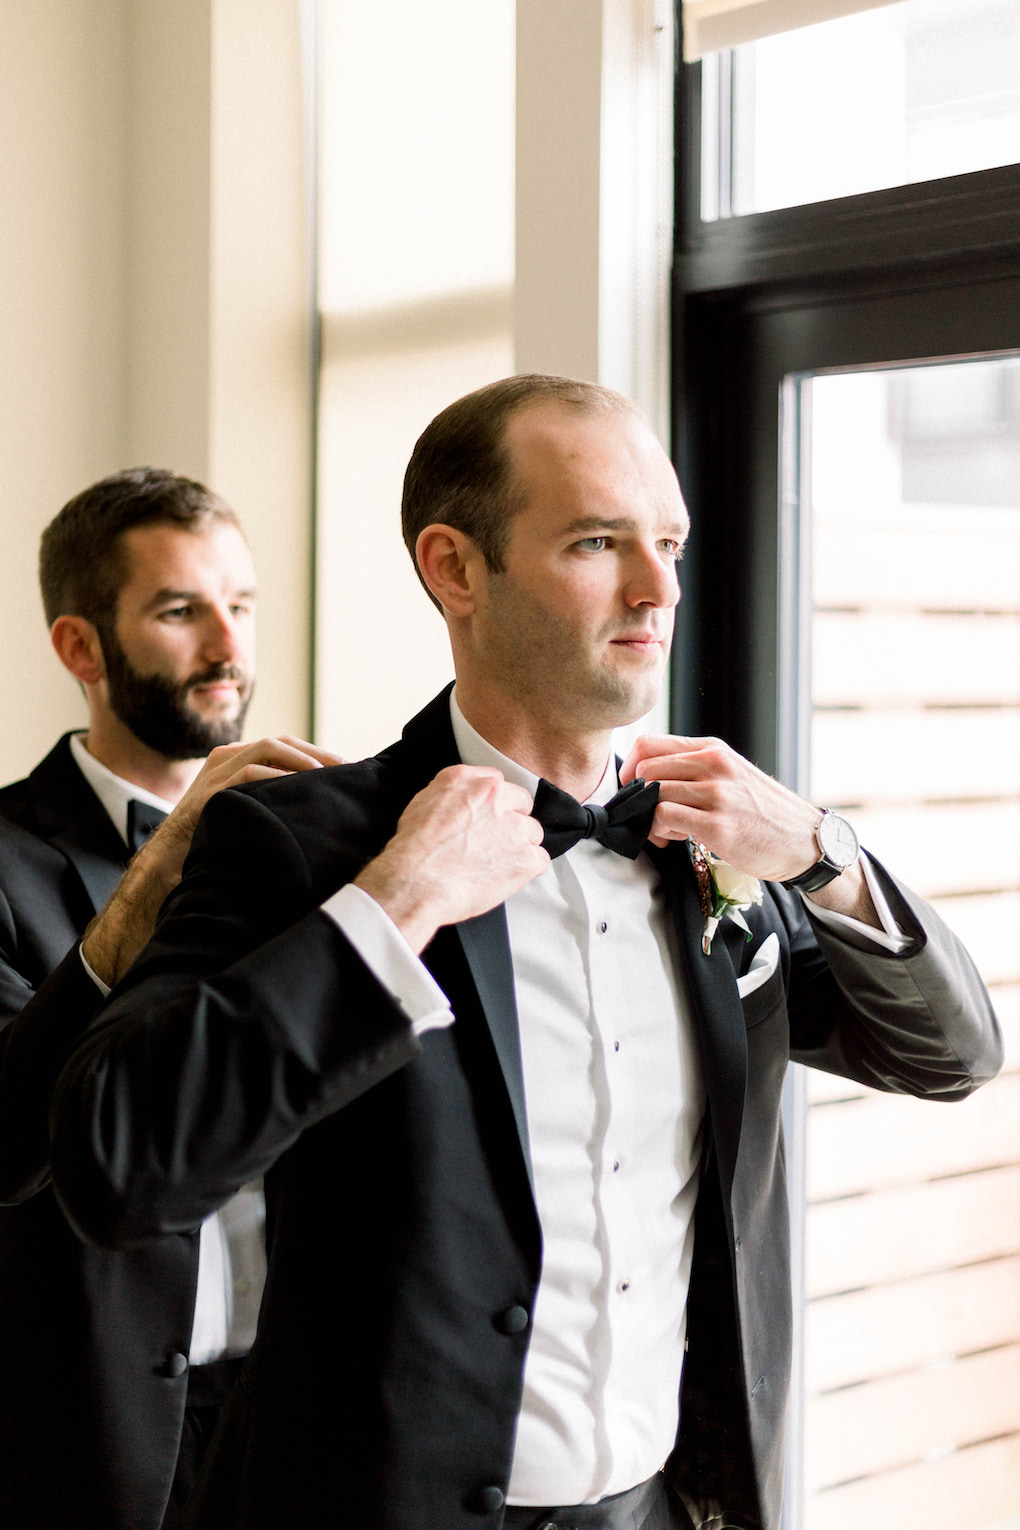 Groom getting ready in black tuxedo: Romantic Fairytale wedding at the Omni William Penn in Pittsburgh, PA planned by Exhale Events. Find more wedding inspiration at exhale-events.com!